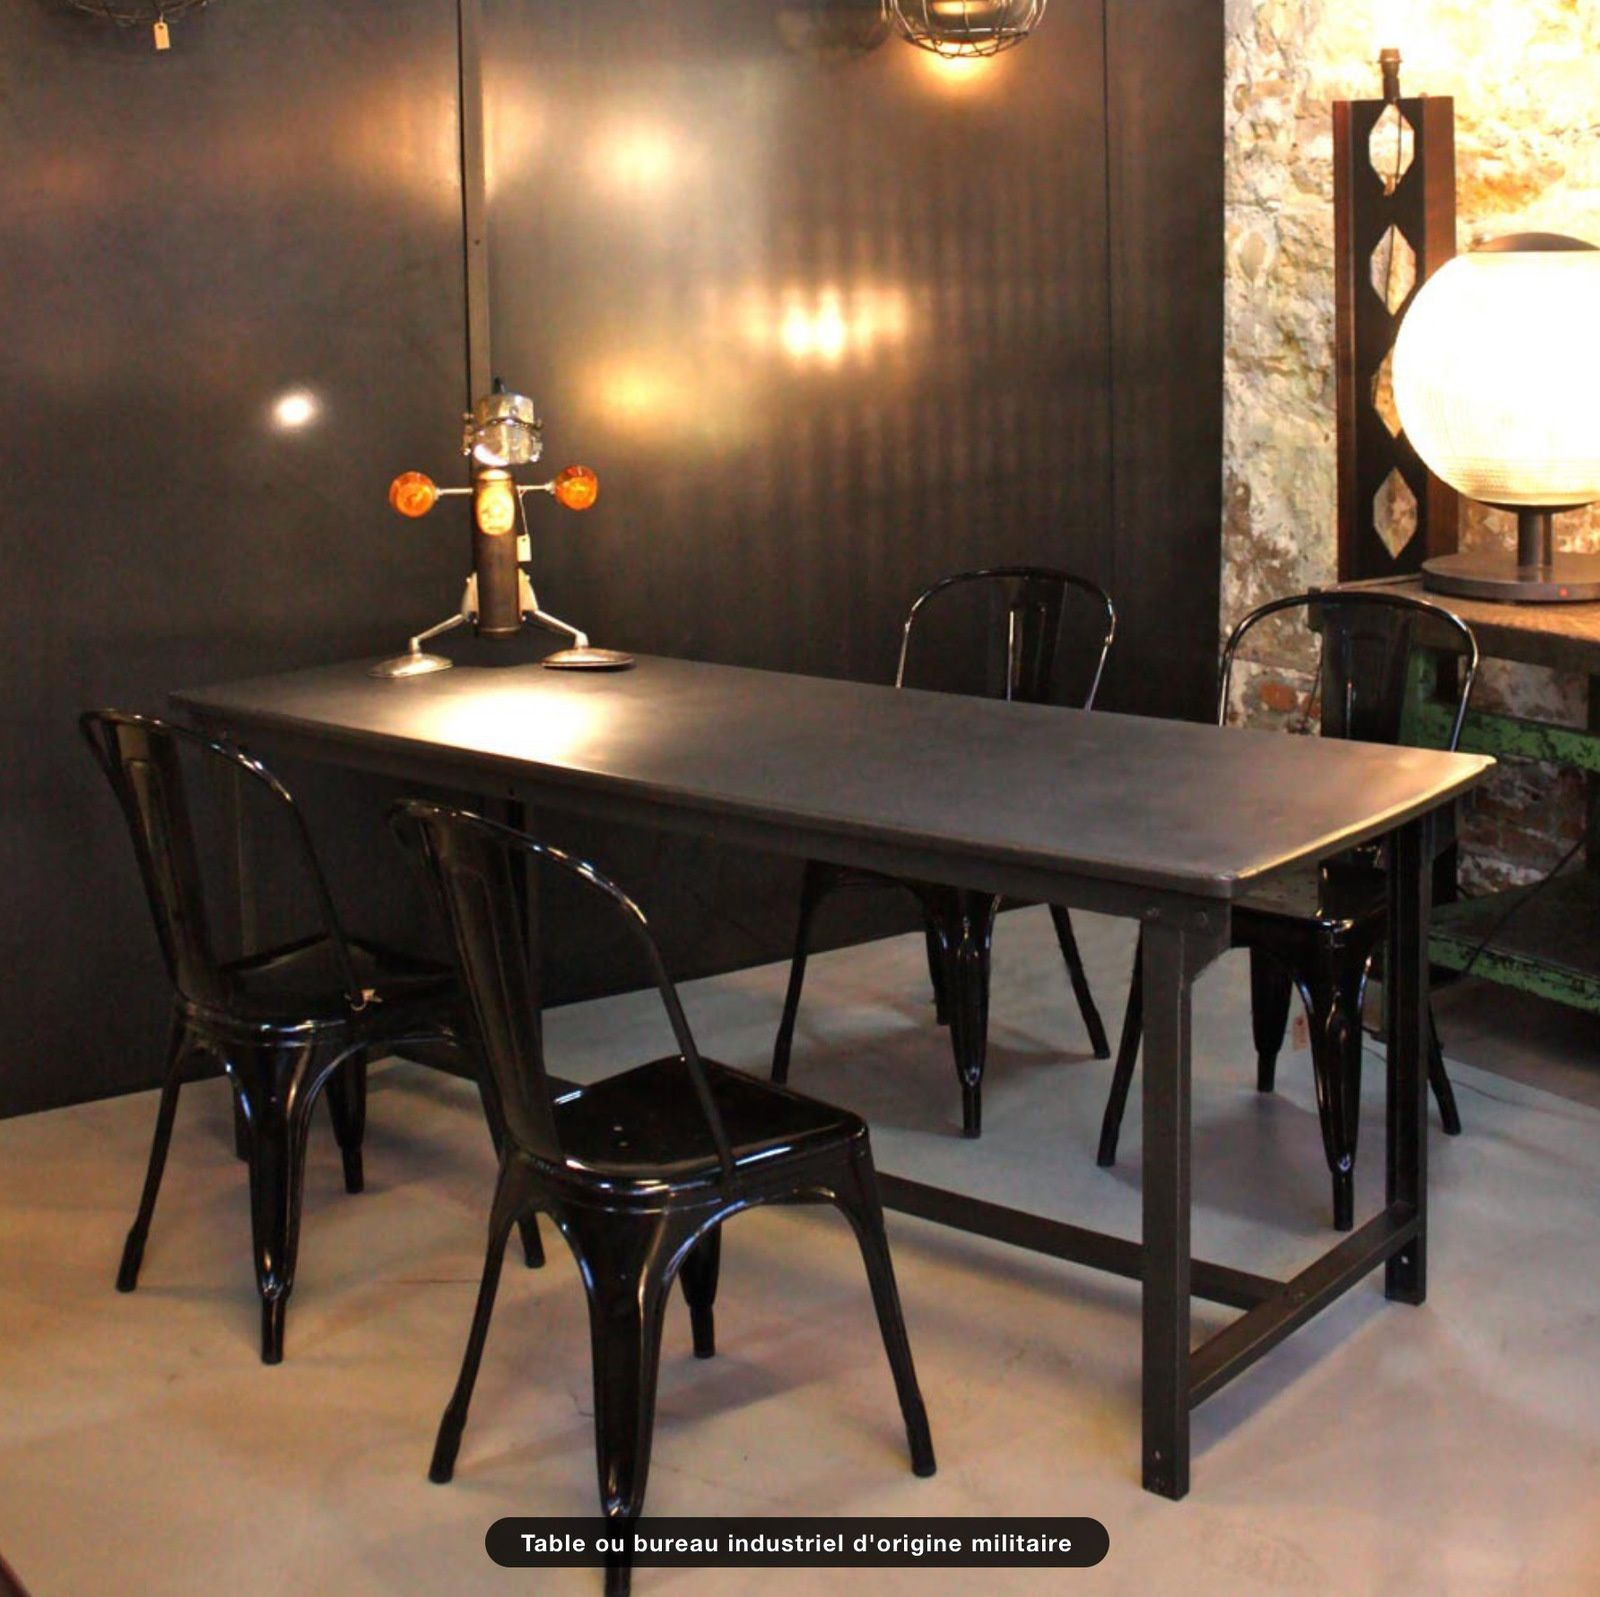 Table ou bureau industriel d'origine militaire